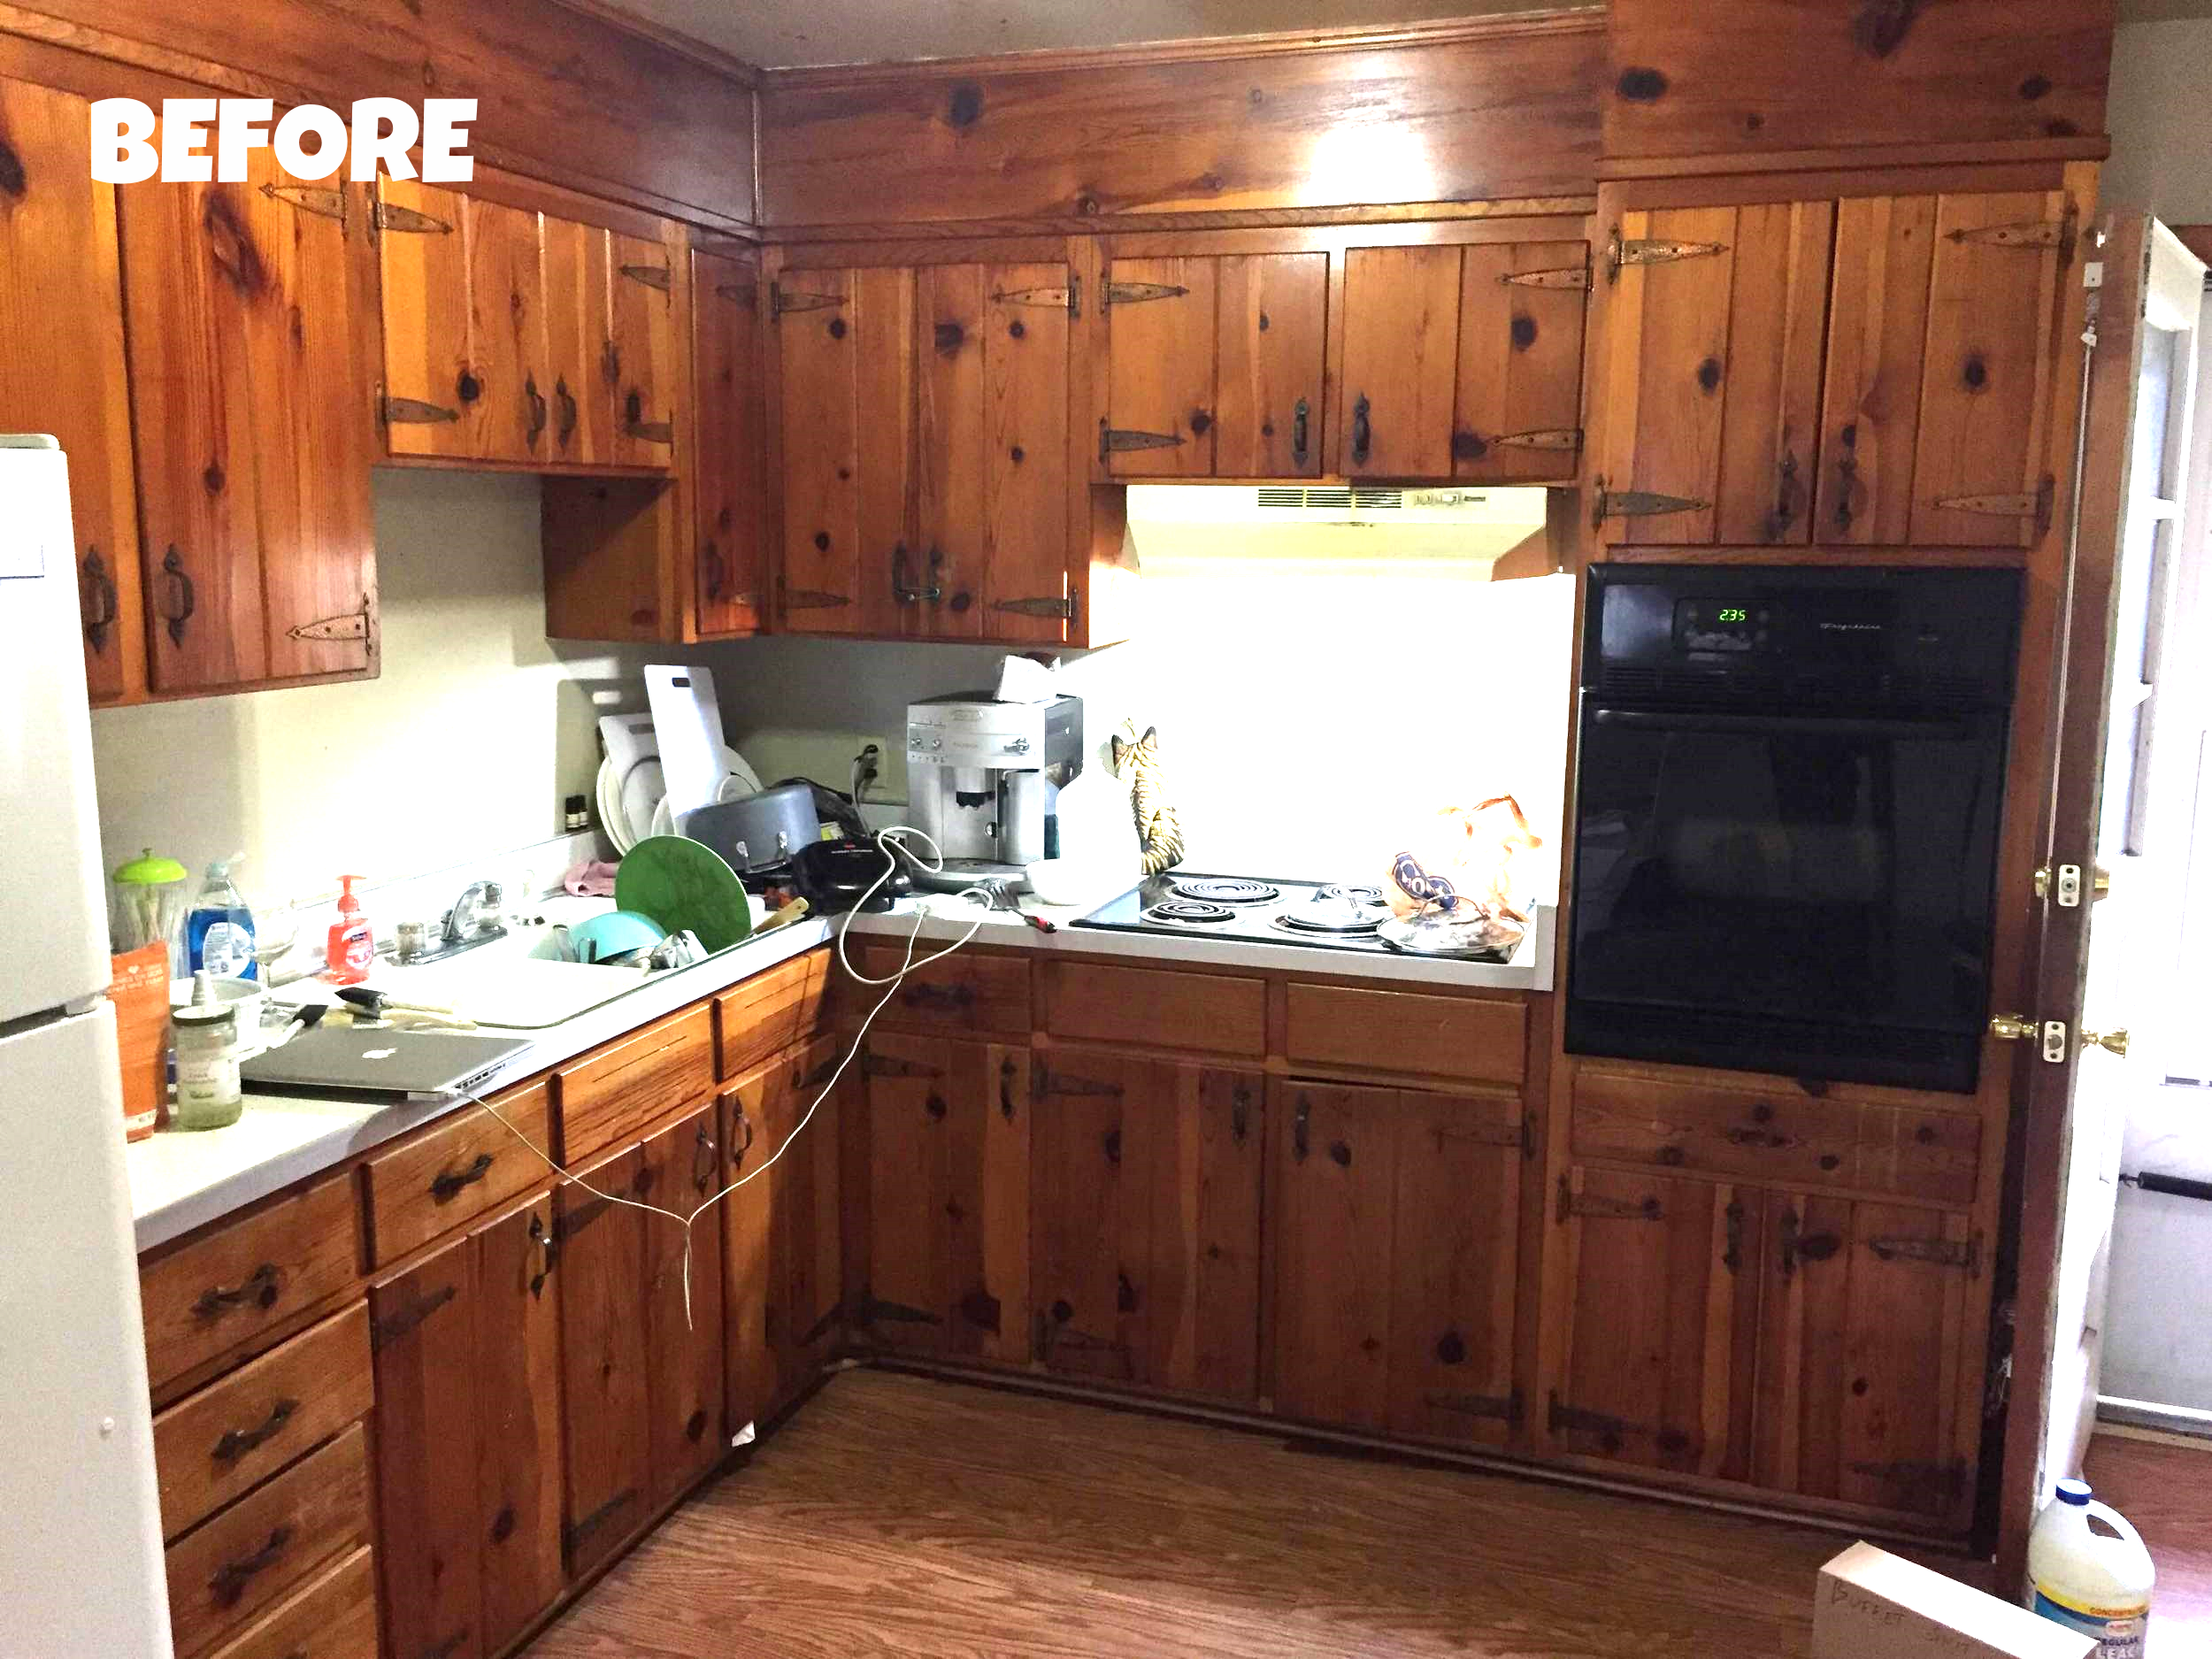 Gross, unedited version of our kitchen when we moved in (OCTOBER 2015)